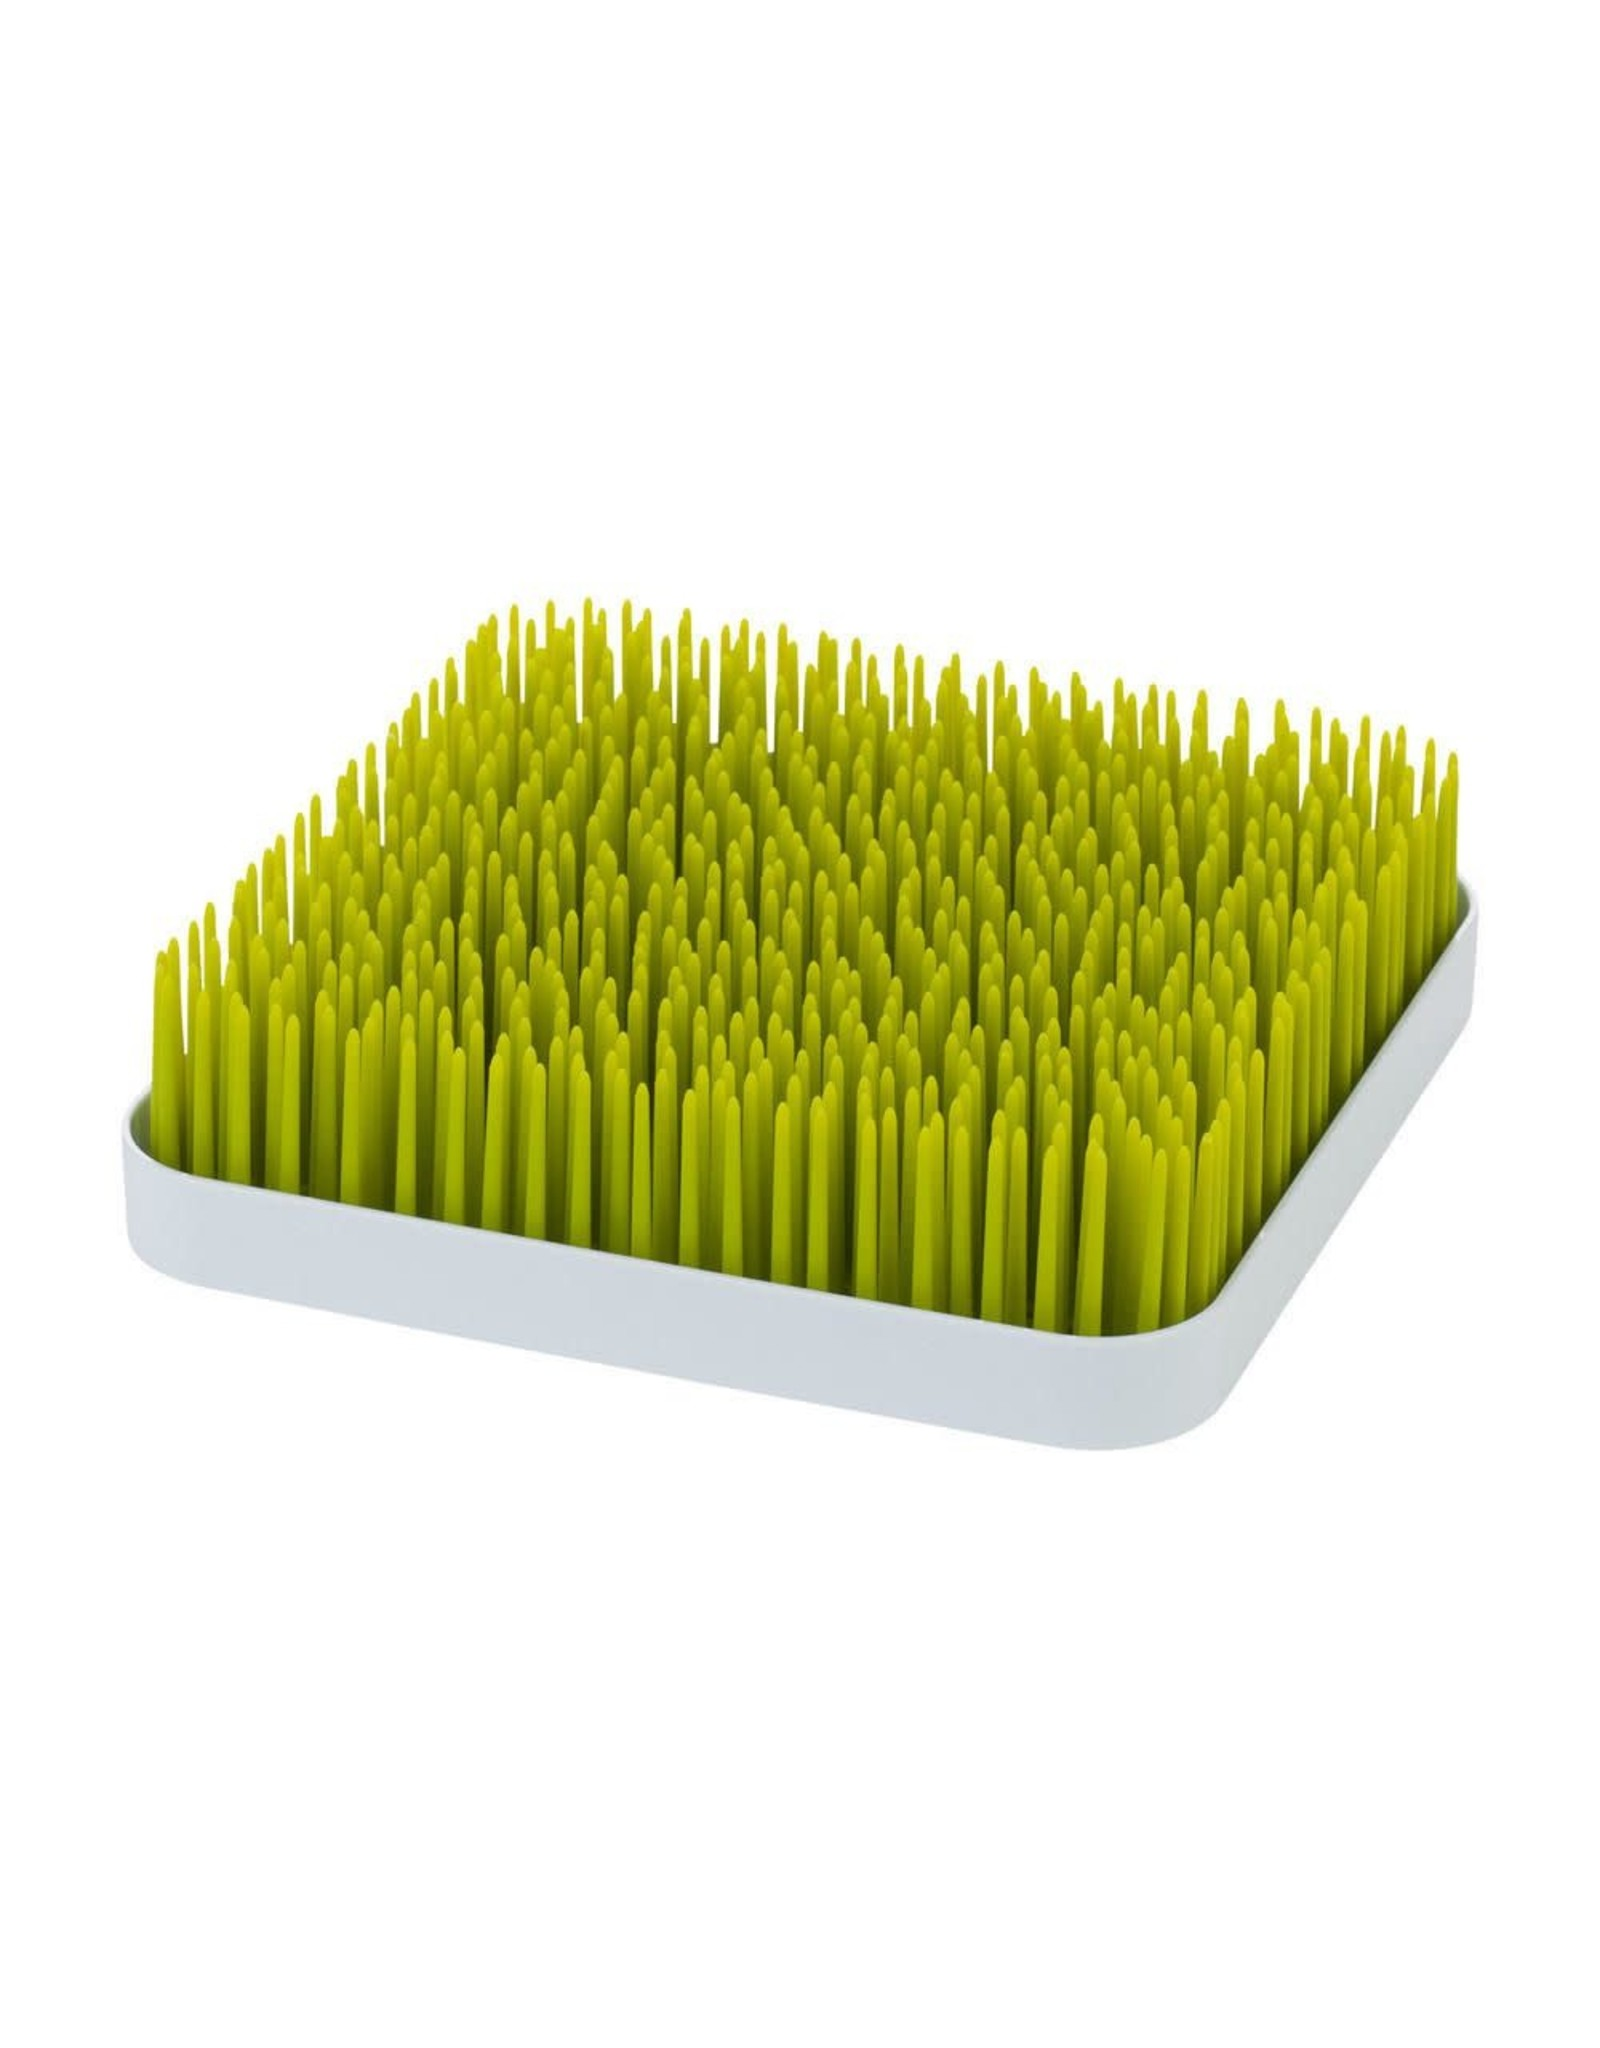 Boon Grass Drying Rack, Green/White